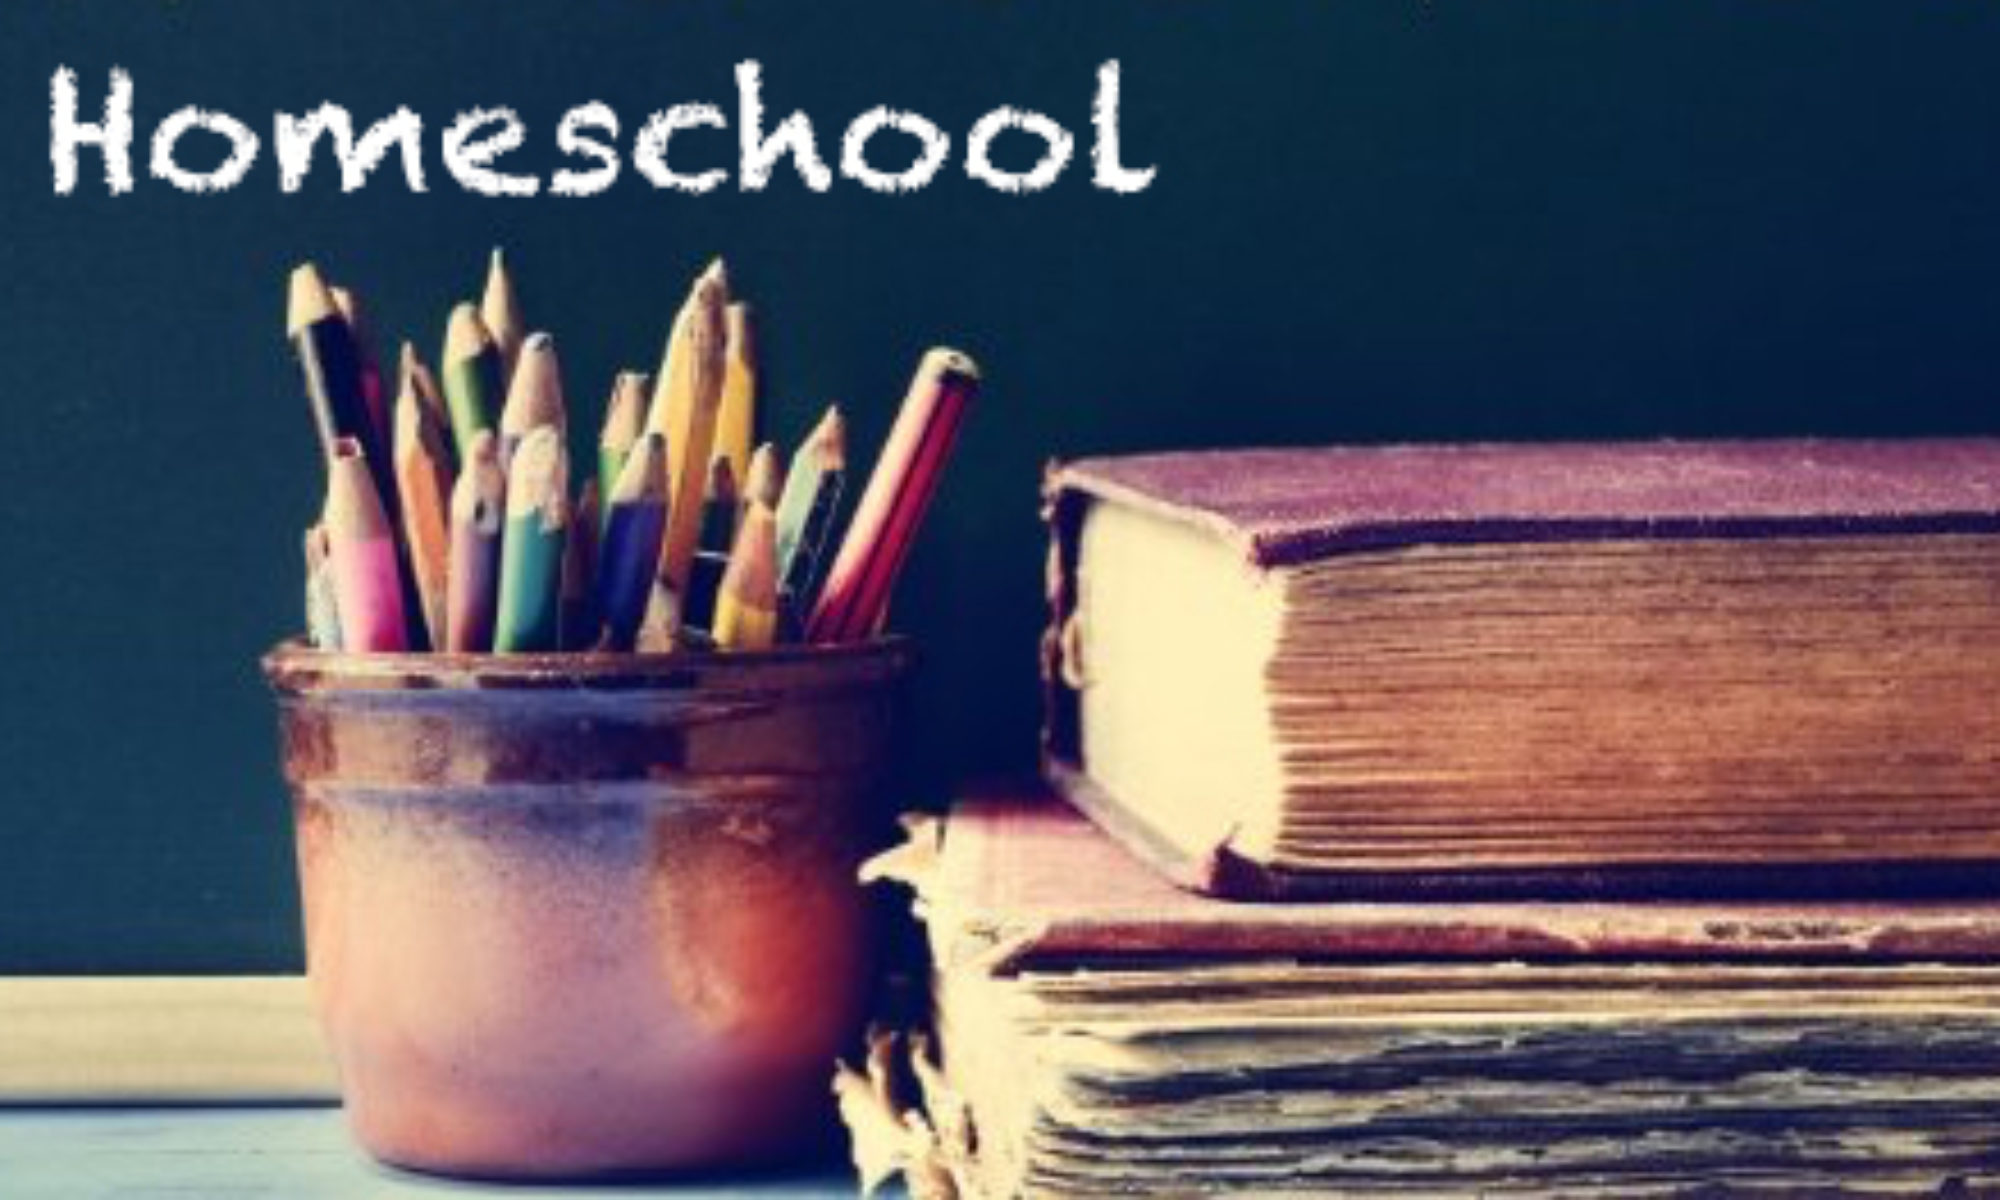 Homeschool Support Services Australia